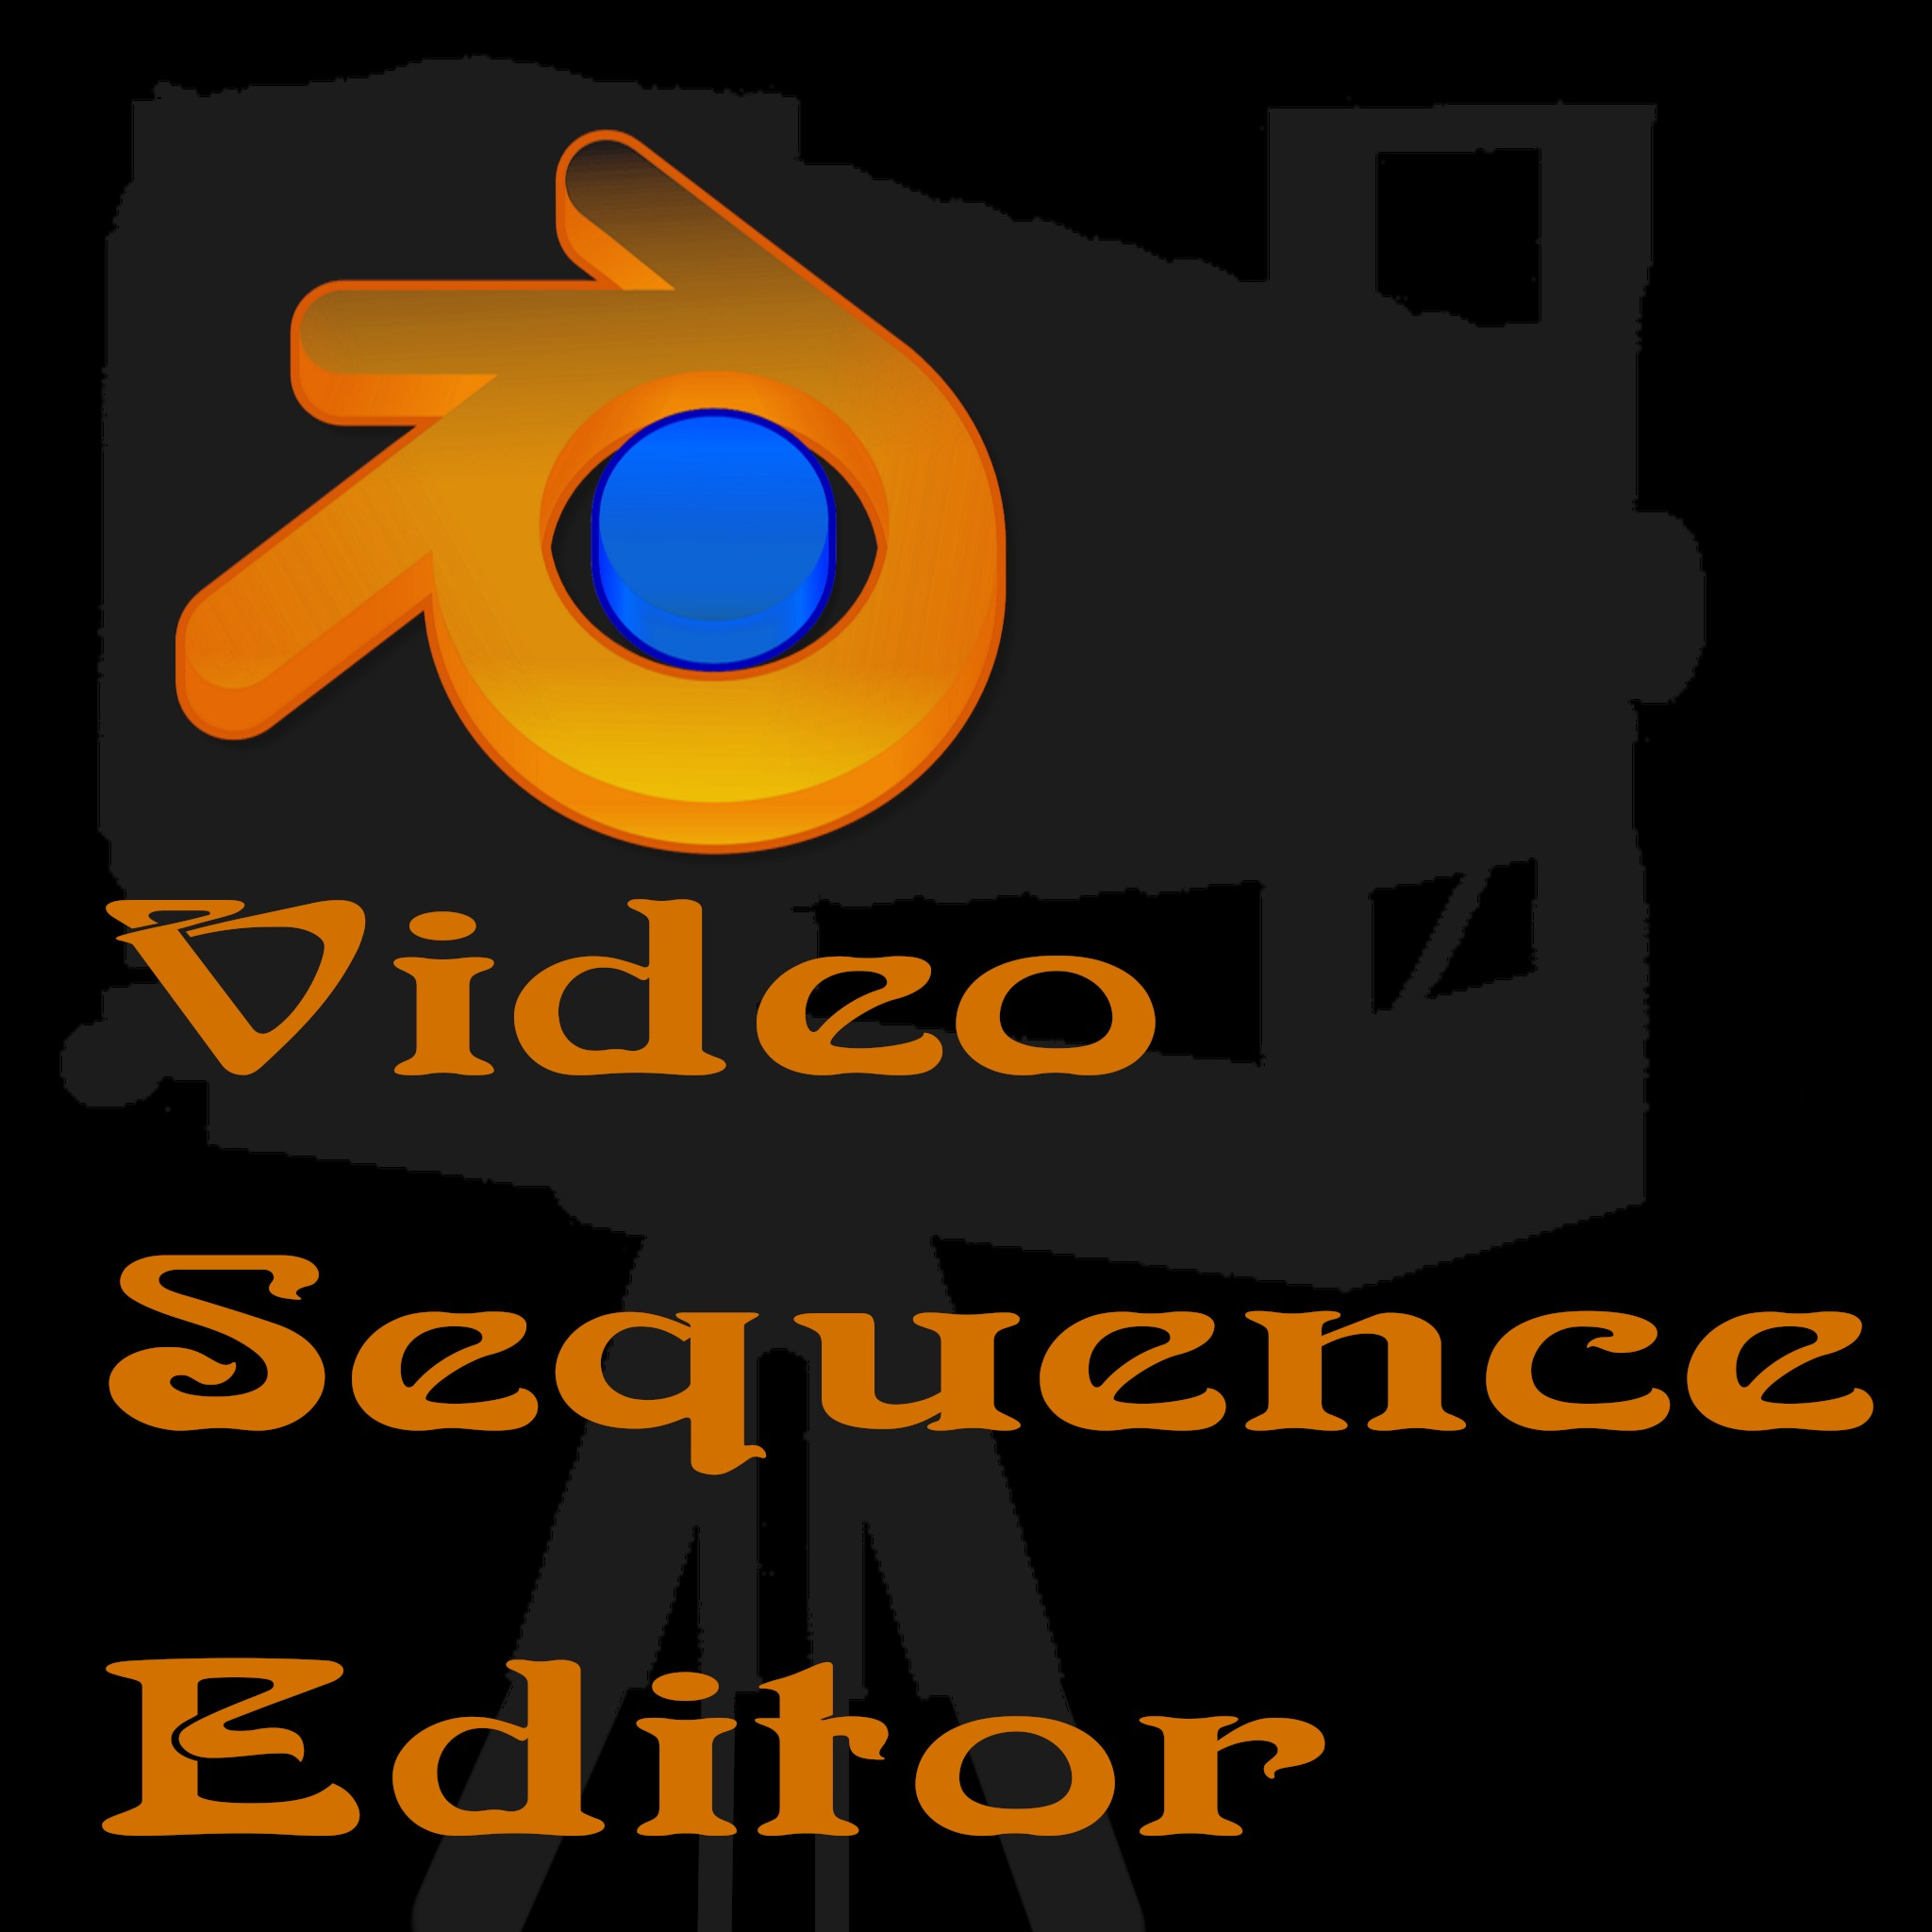 New Blender Video Sequence Editor Tutorial - Tutorials, Tips